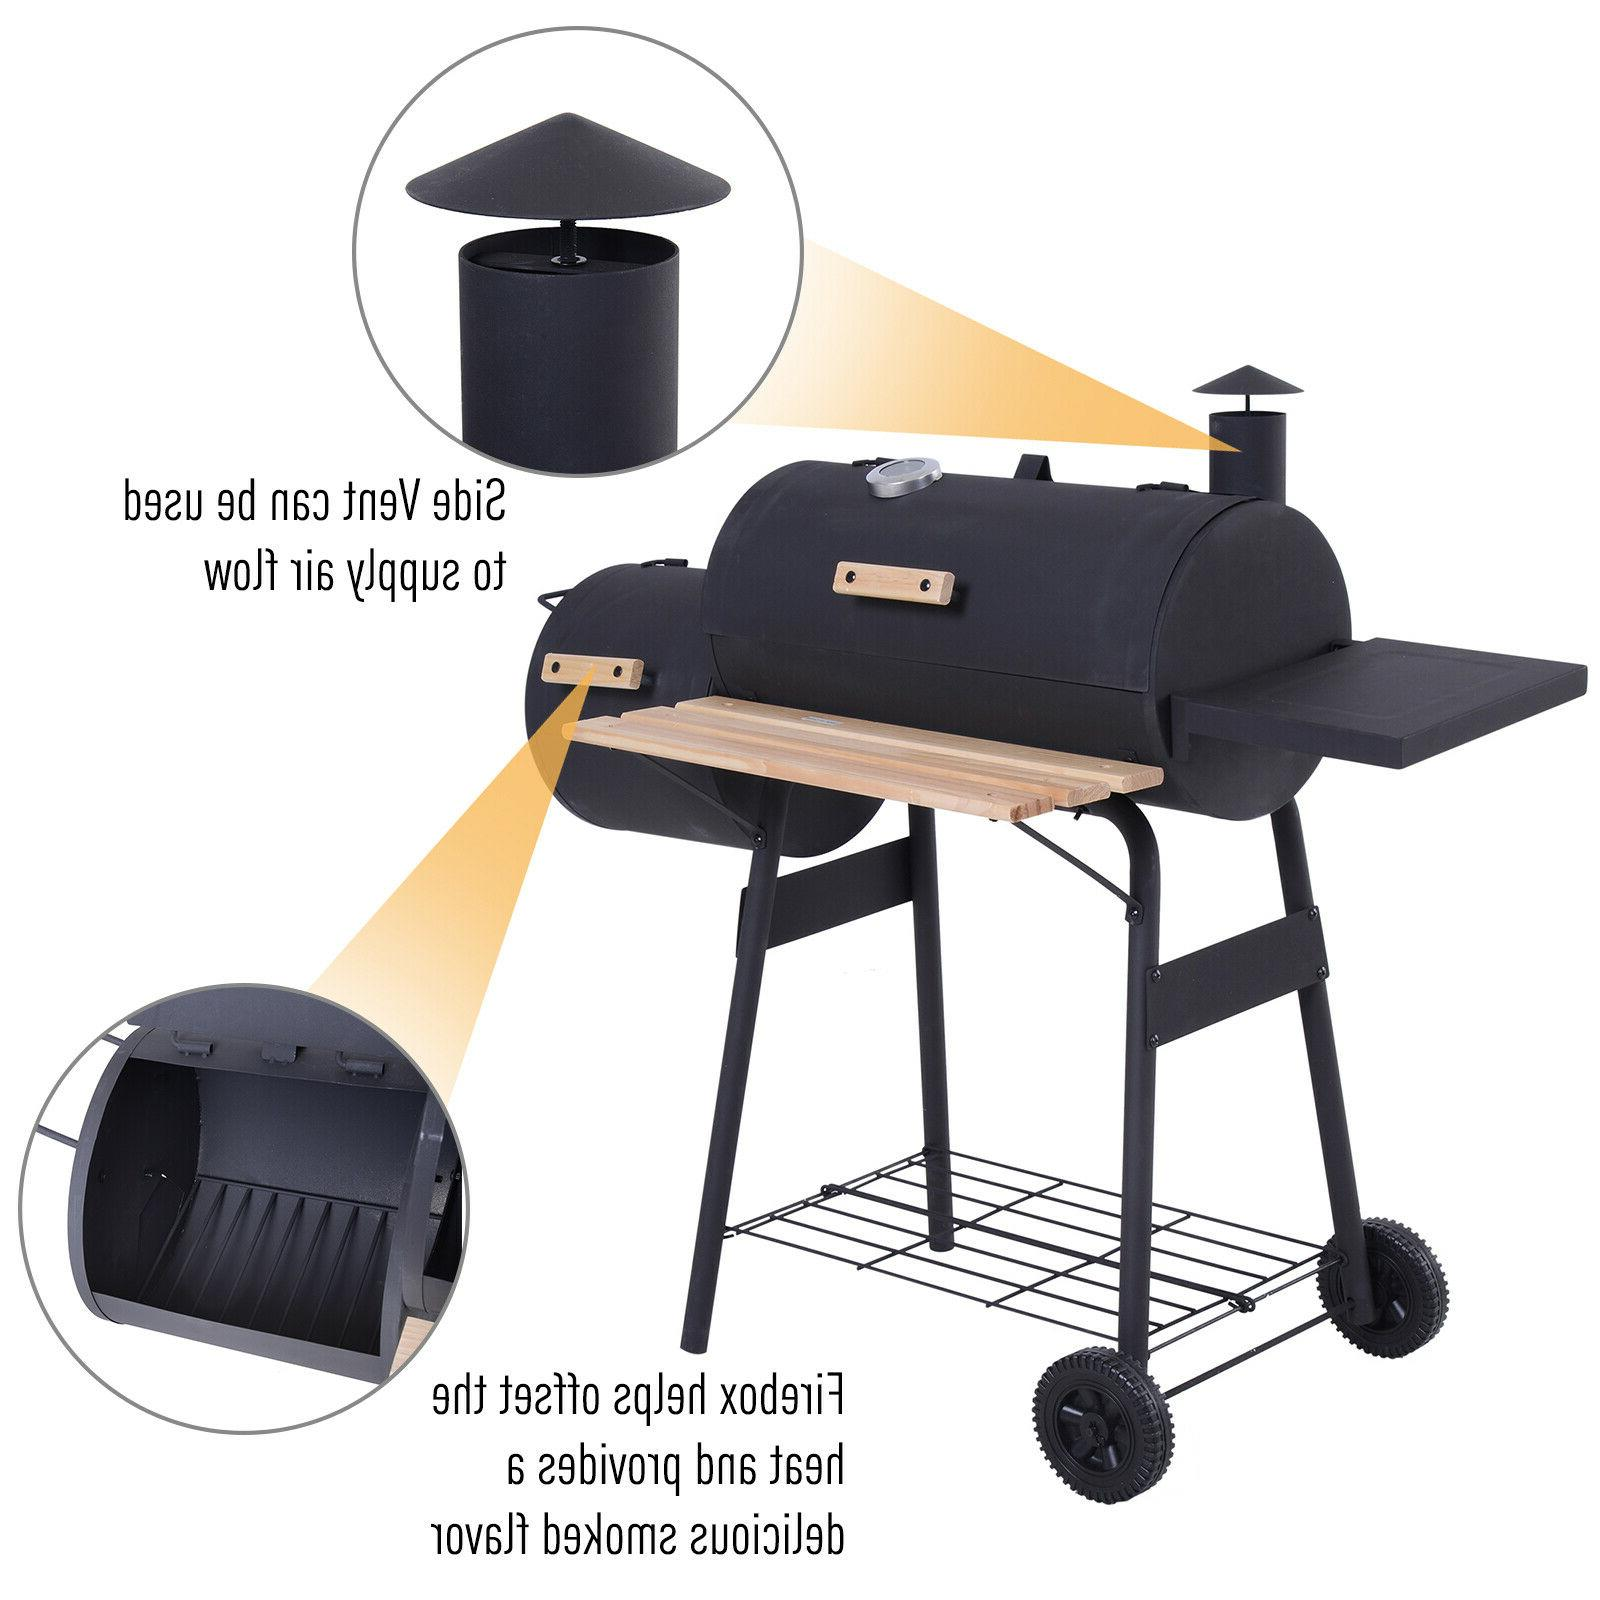 Outsunny Backyard Grill and Combo